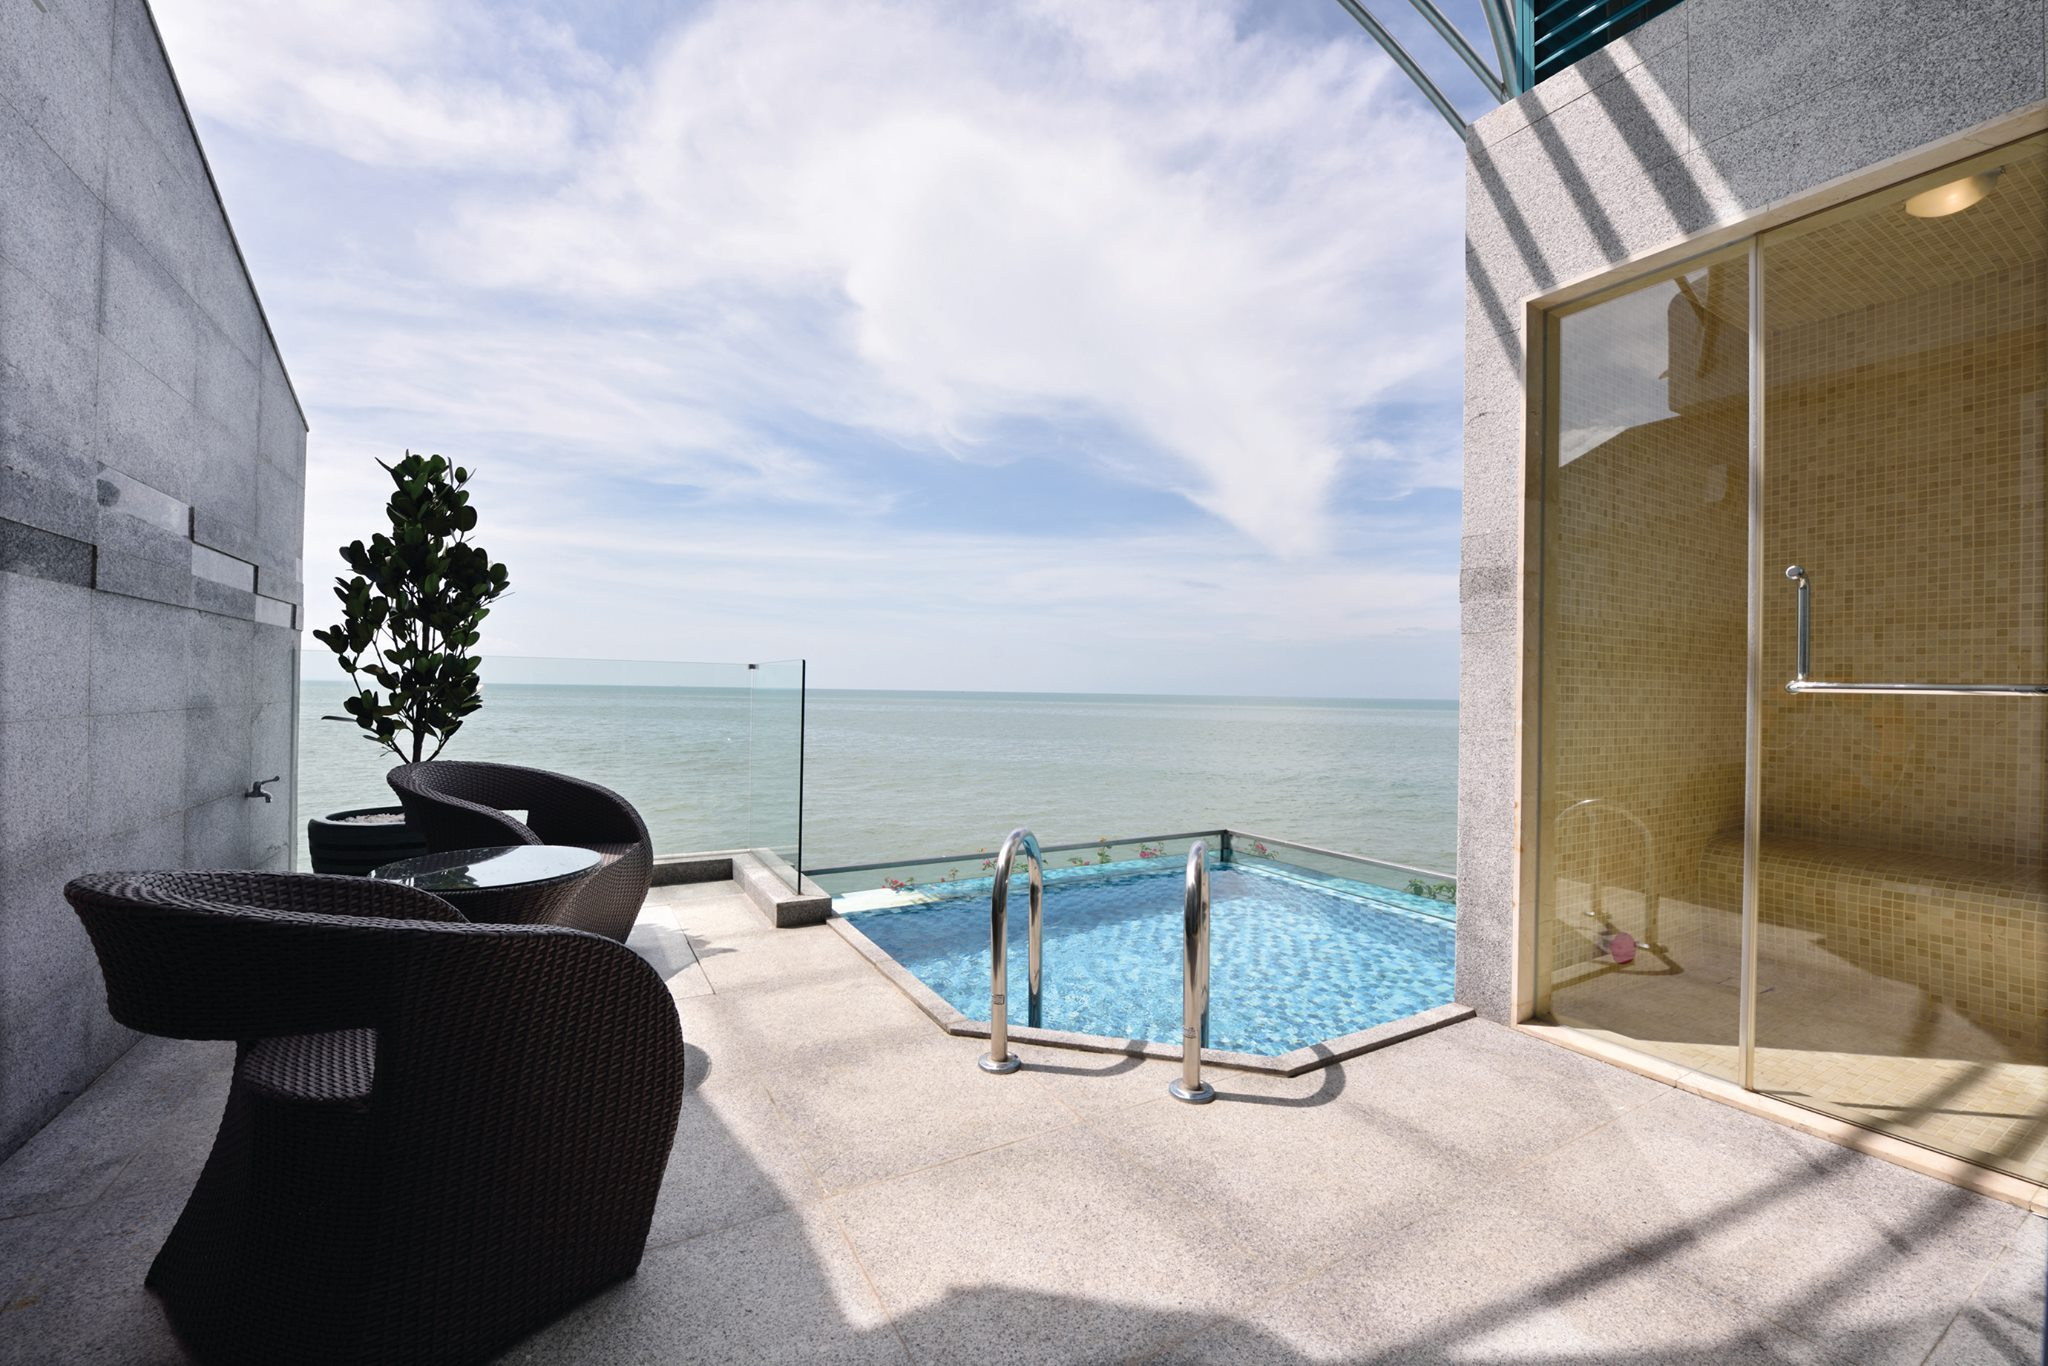 Image from Lexis Hibiscus Port Dickson